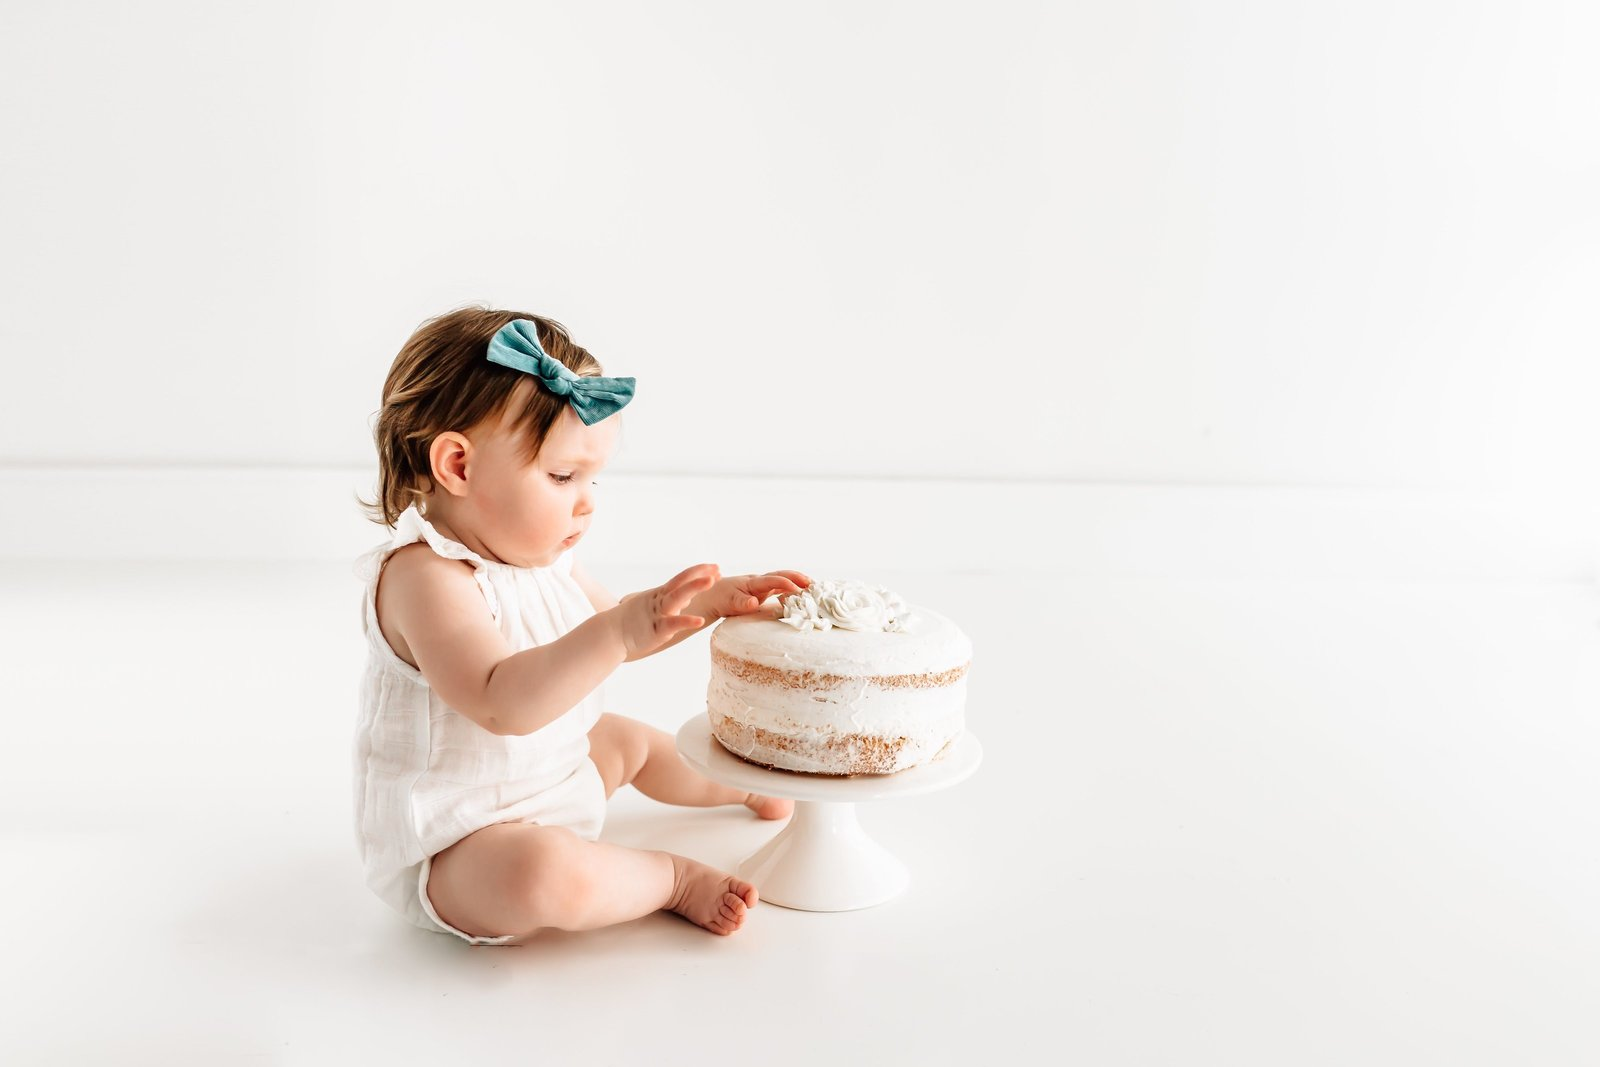 St_Louis_Baby_Photographer_Kelly_Laramore_Photography_91